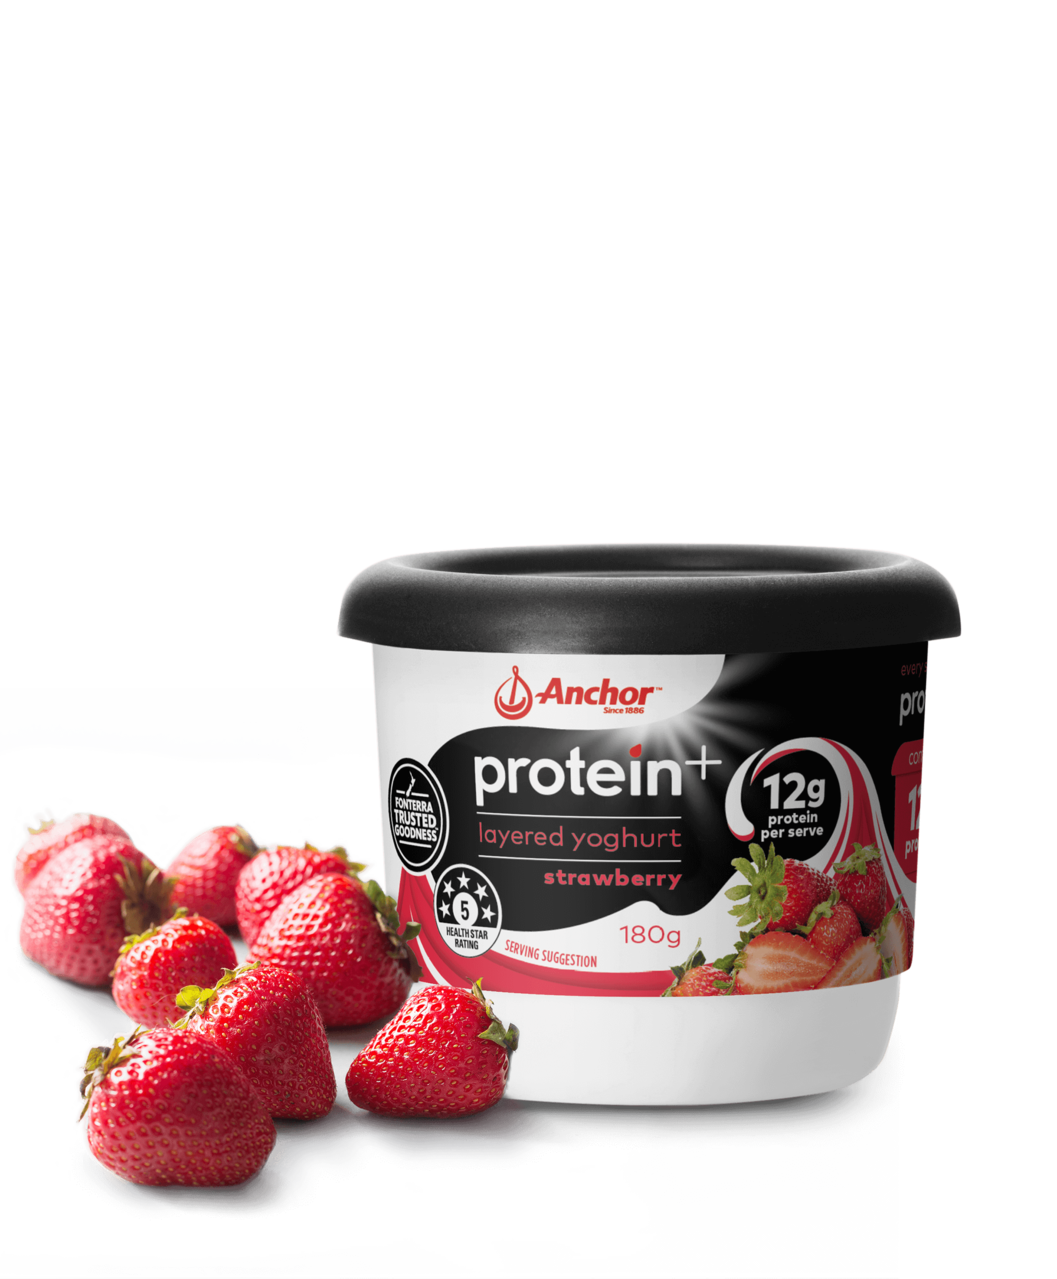 Anchor Protein+ Strawberry Yoghurt 180g tub